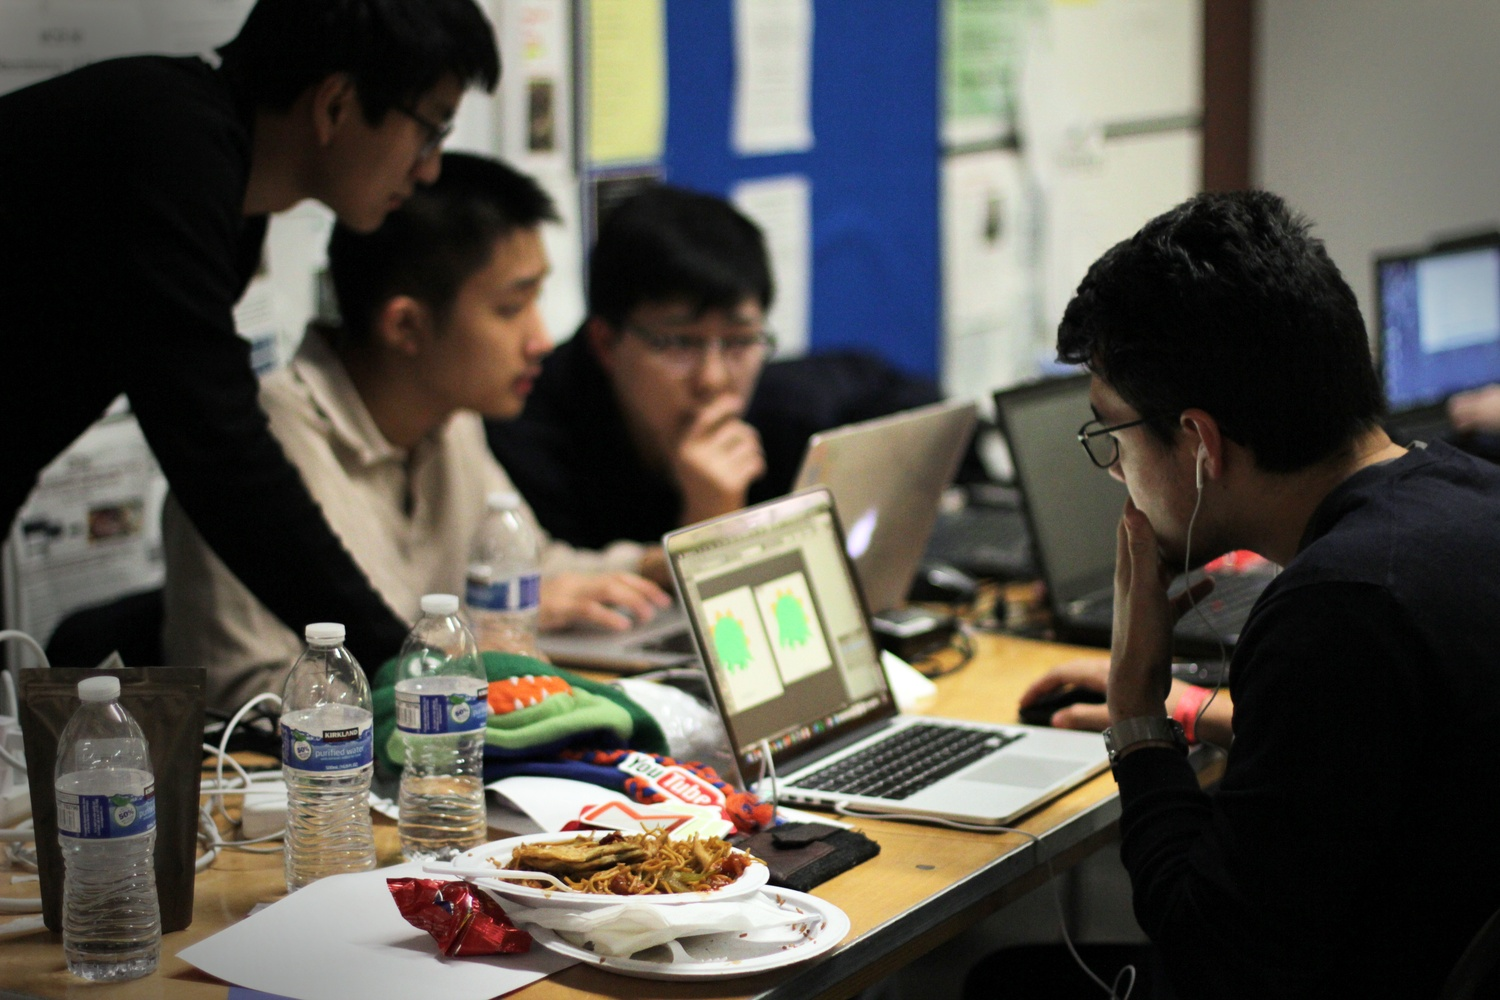 Takashi Wickes, a student at the University of Florida participating in Hack Harvard, works on graphics and code for his group's creation. Hack Harvard was a 36-hour hackathon that brought together computer programmers and tech companies.